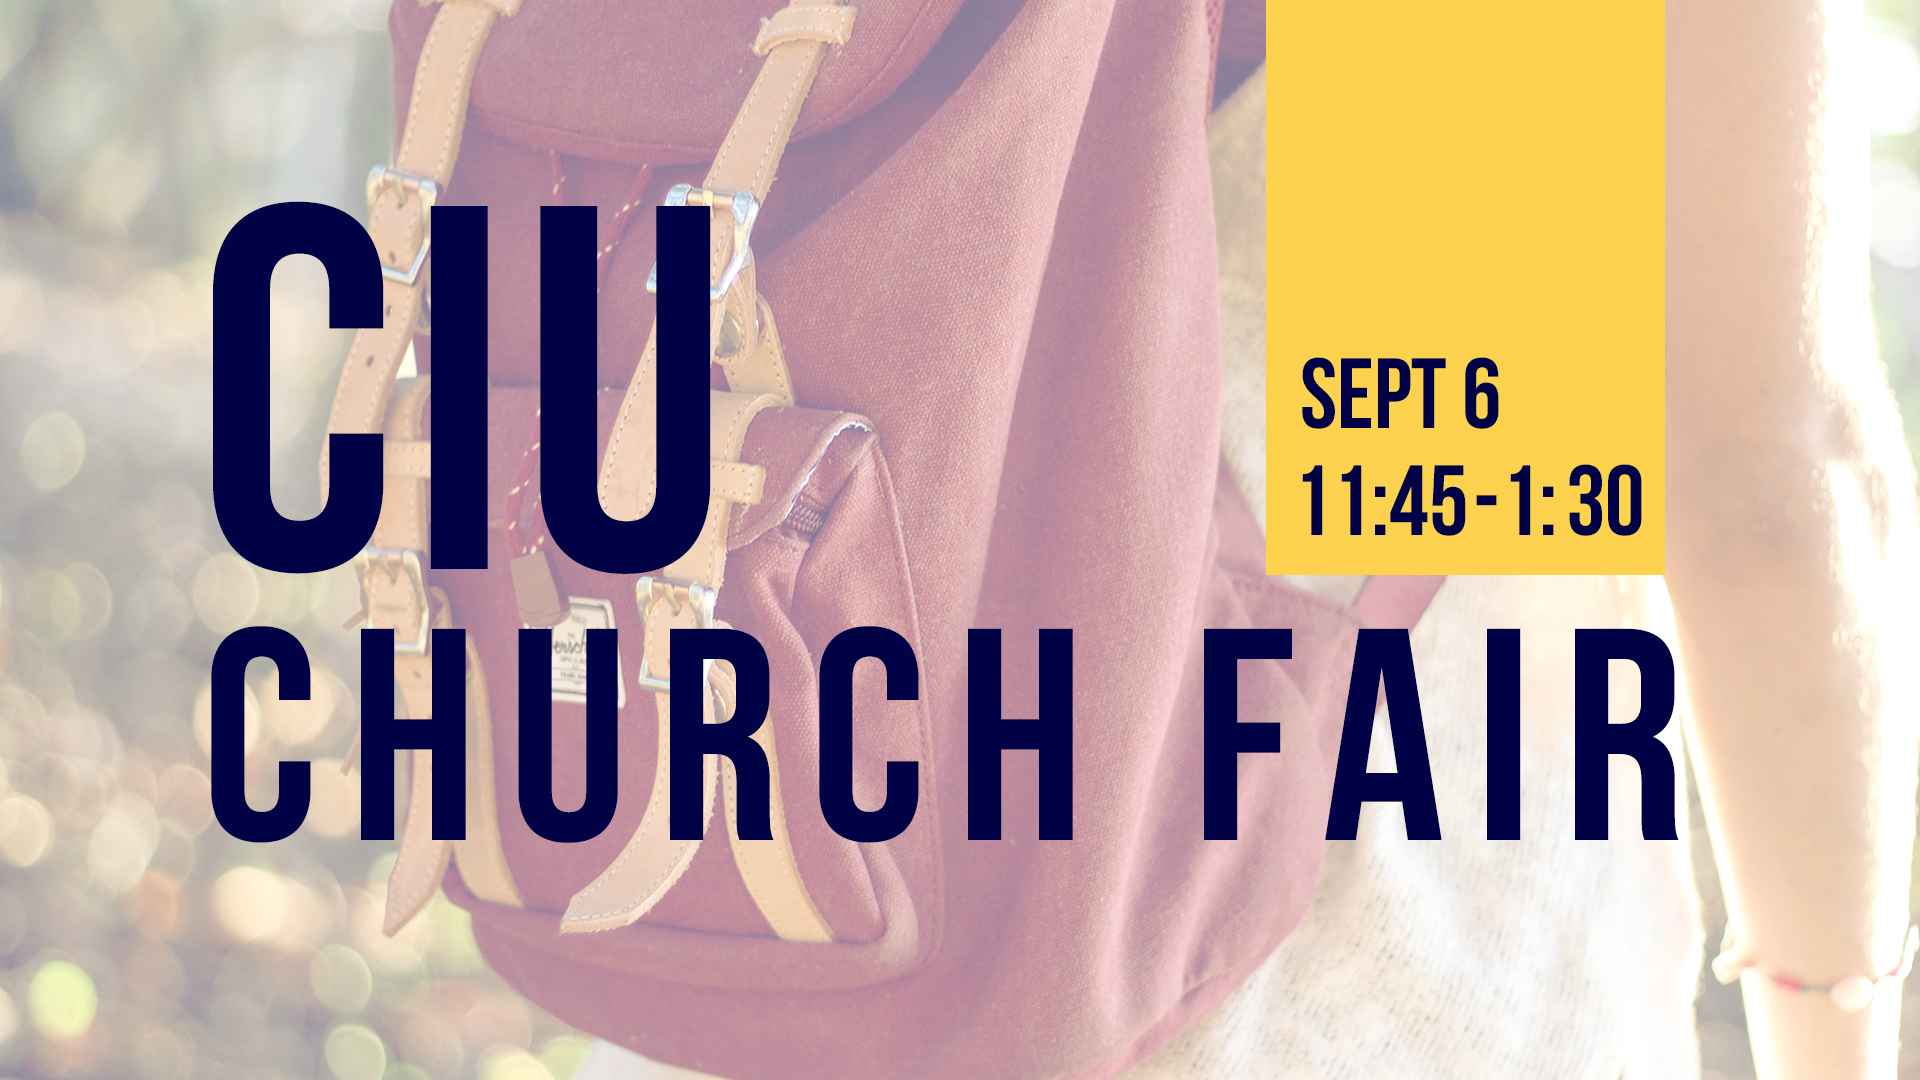 College_churchfair-CIU2018.jpg